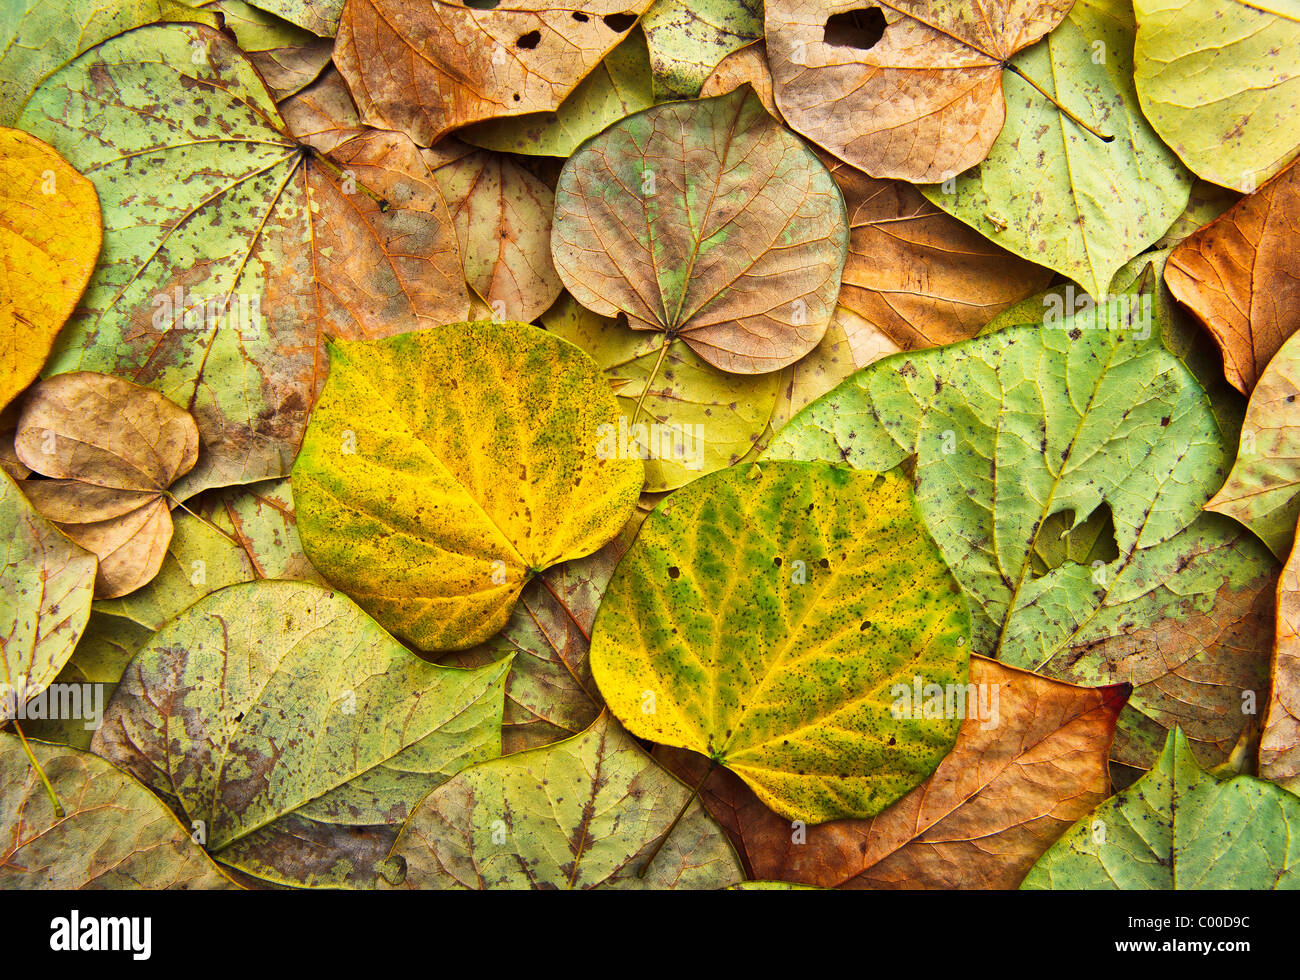 Colorful, vibrant Eastern Red Bud tree leaves form an intricate pattern, showing various states of returning back to the soil. Stock Photo